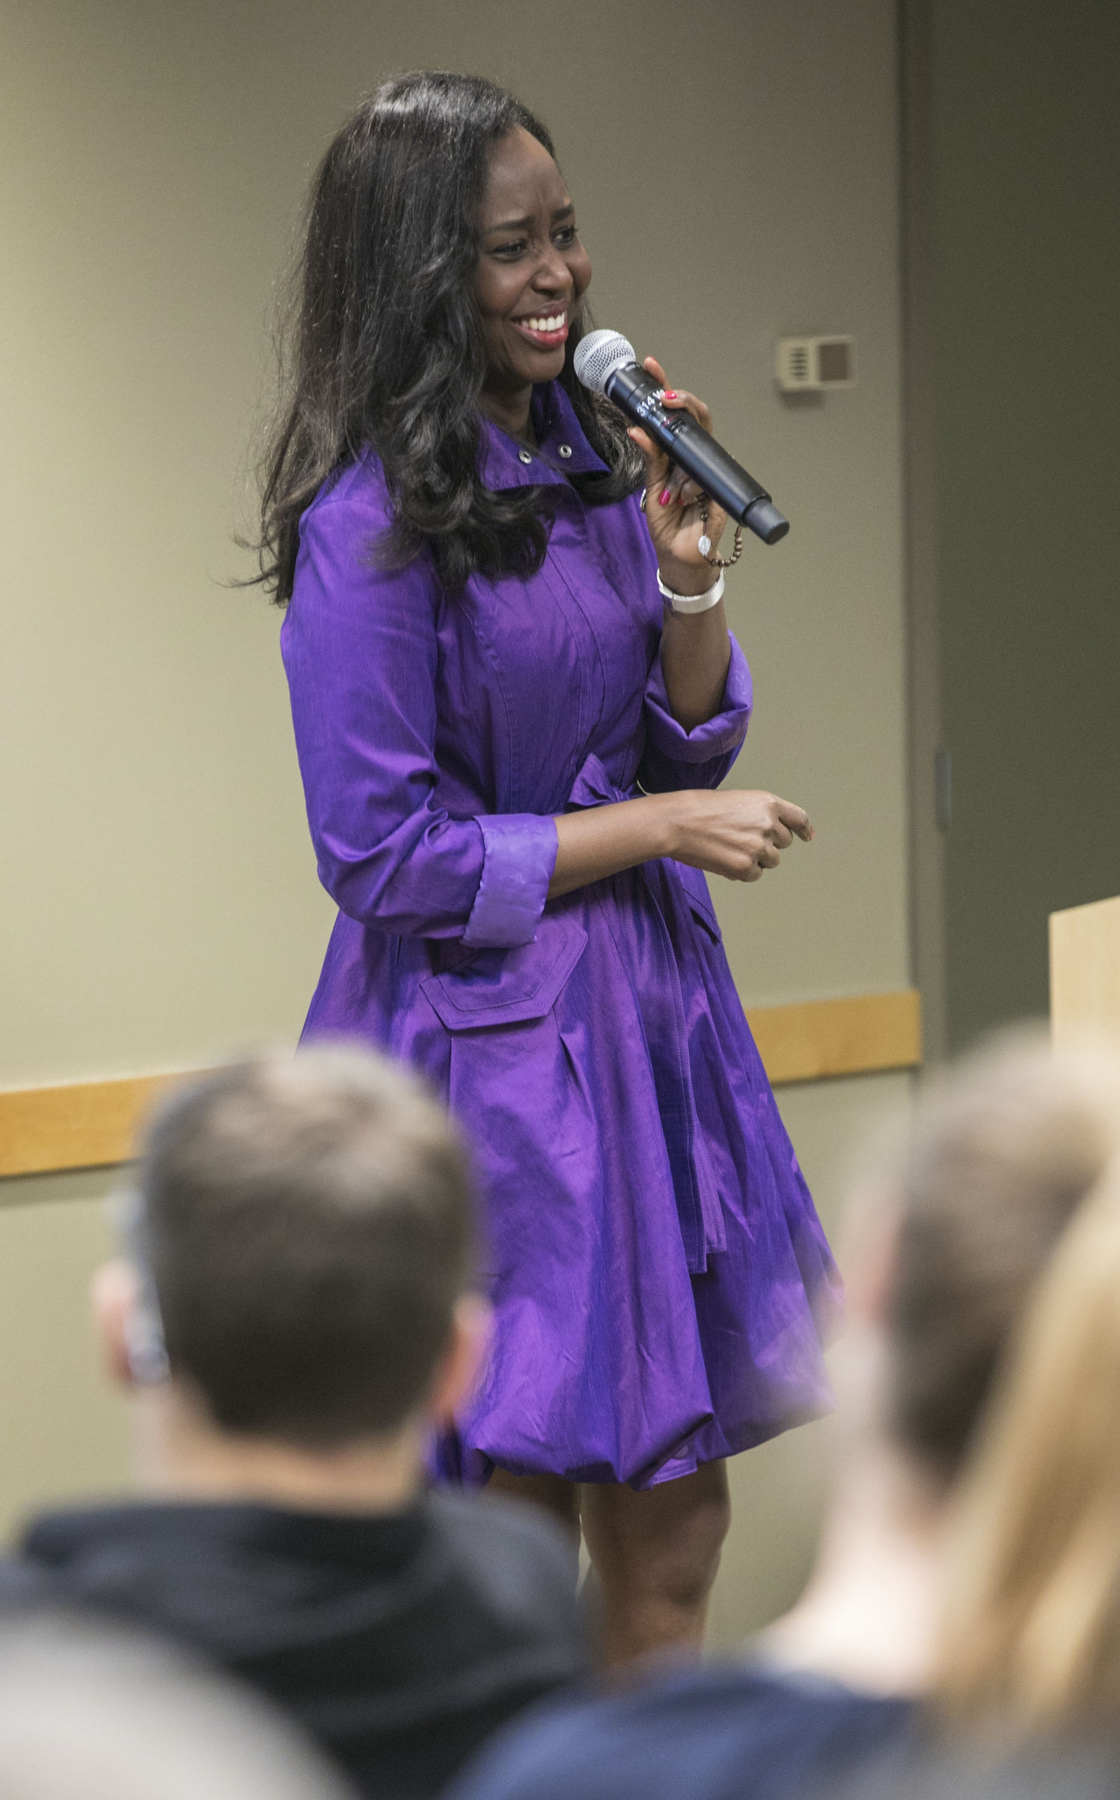 Rwandan author visits DePaul